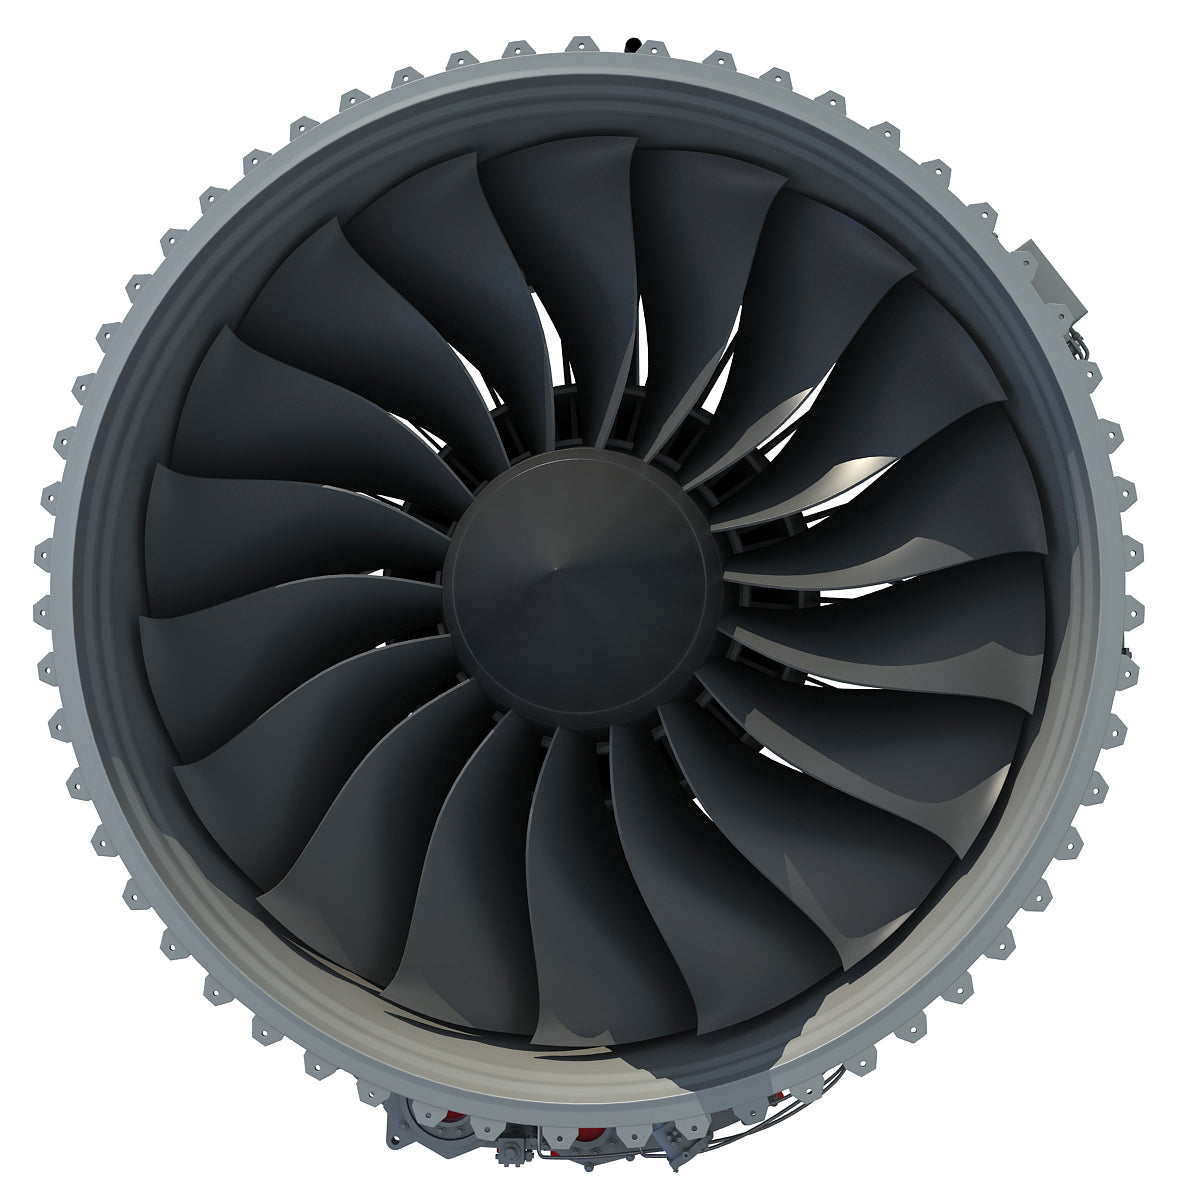 Rolls-Royce Trent 1000 Turbofan Aircraft Engine